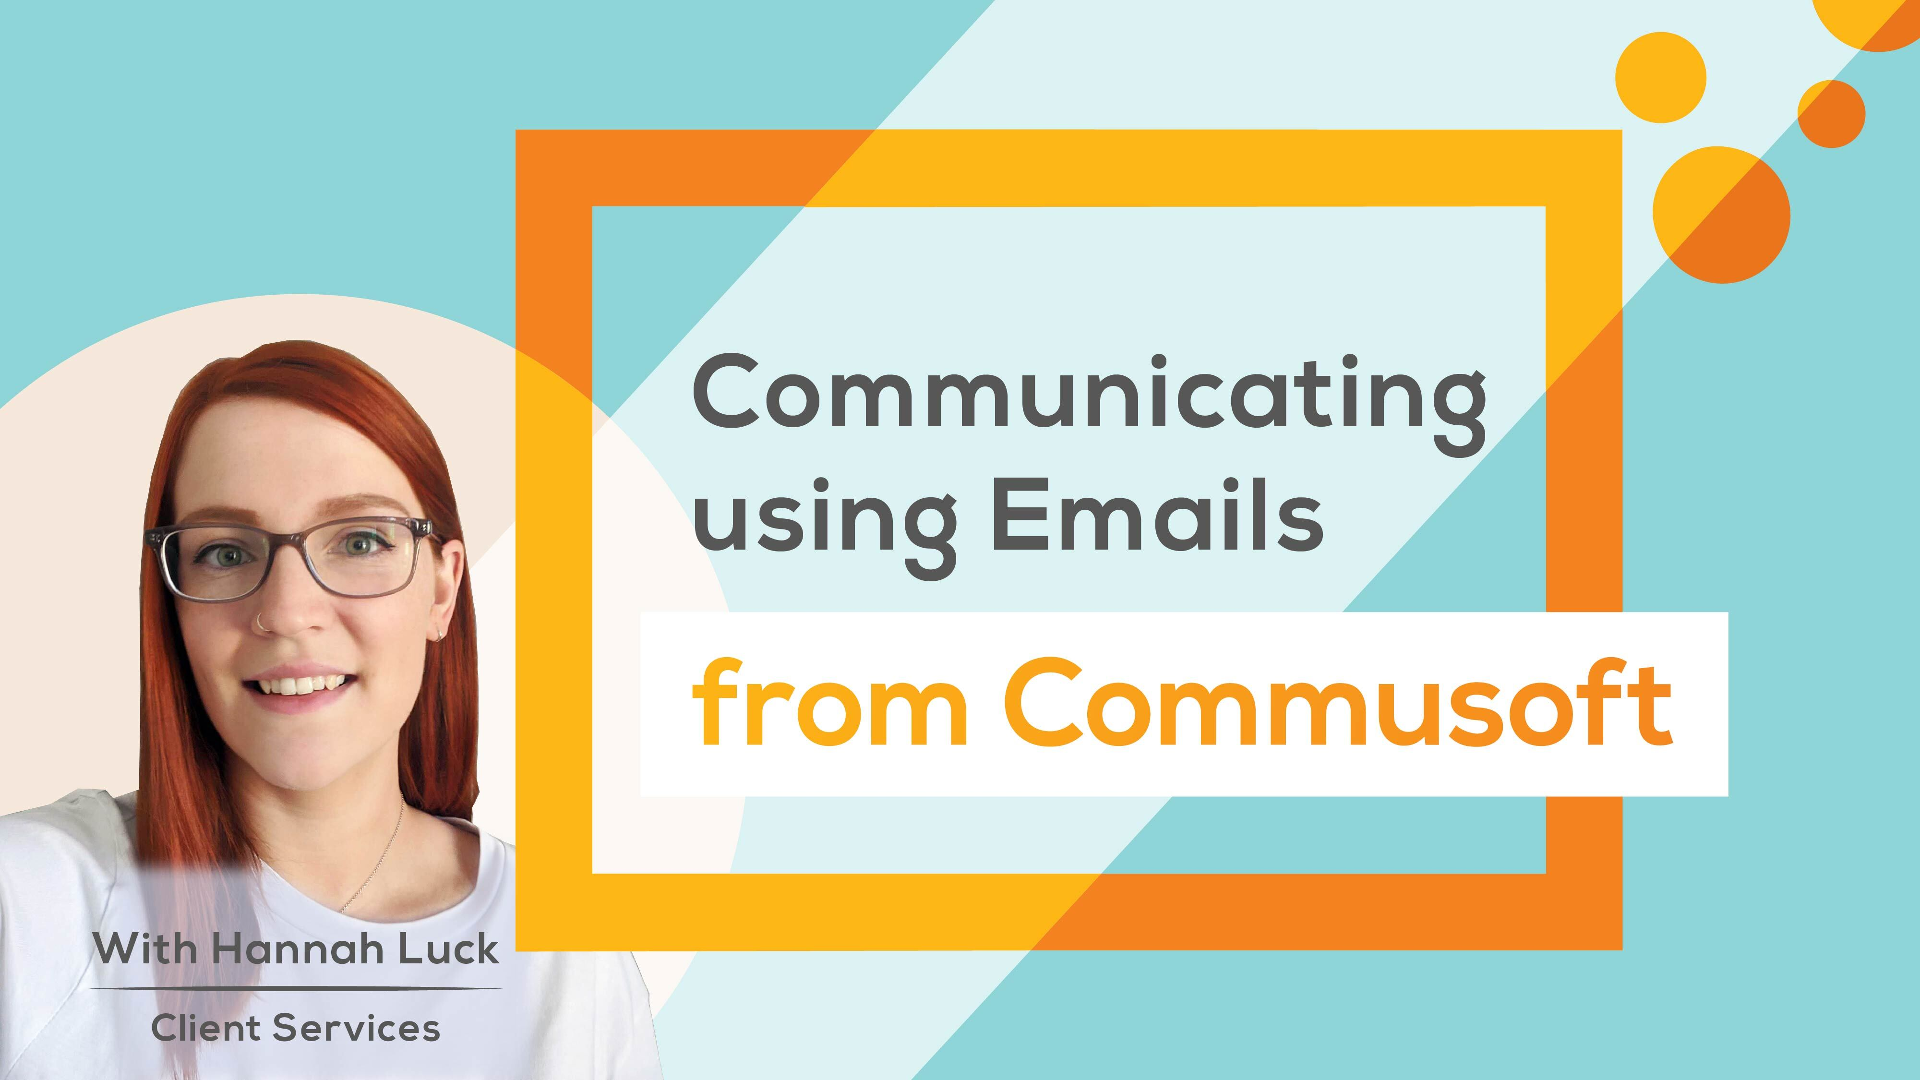 Communicating_using_emails_from_Commusoft_First_Frame